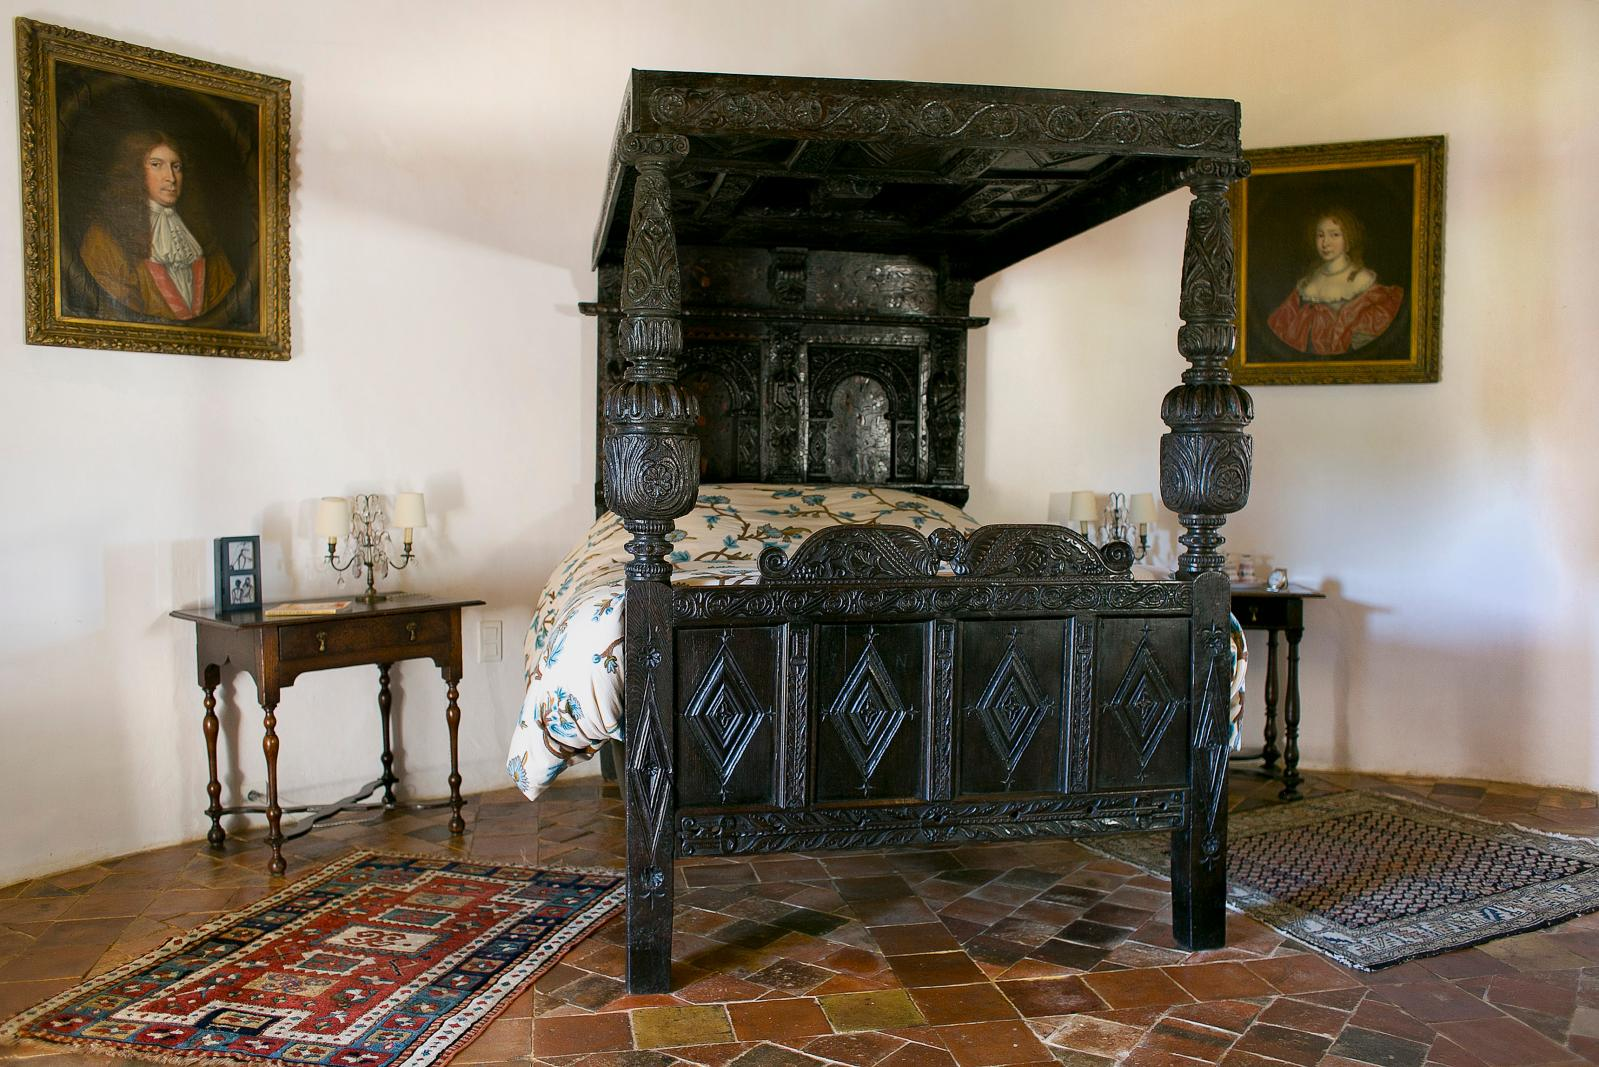 English oak bed dating from 1633, with its central marquetry panel at Château Lagrézette, Alain-Dominique Perrin's estate.